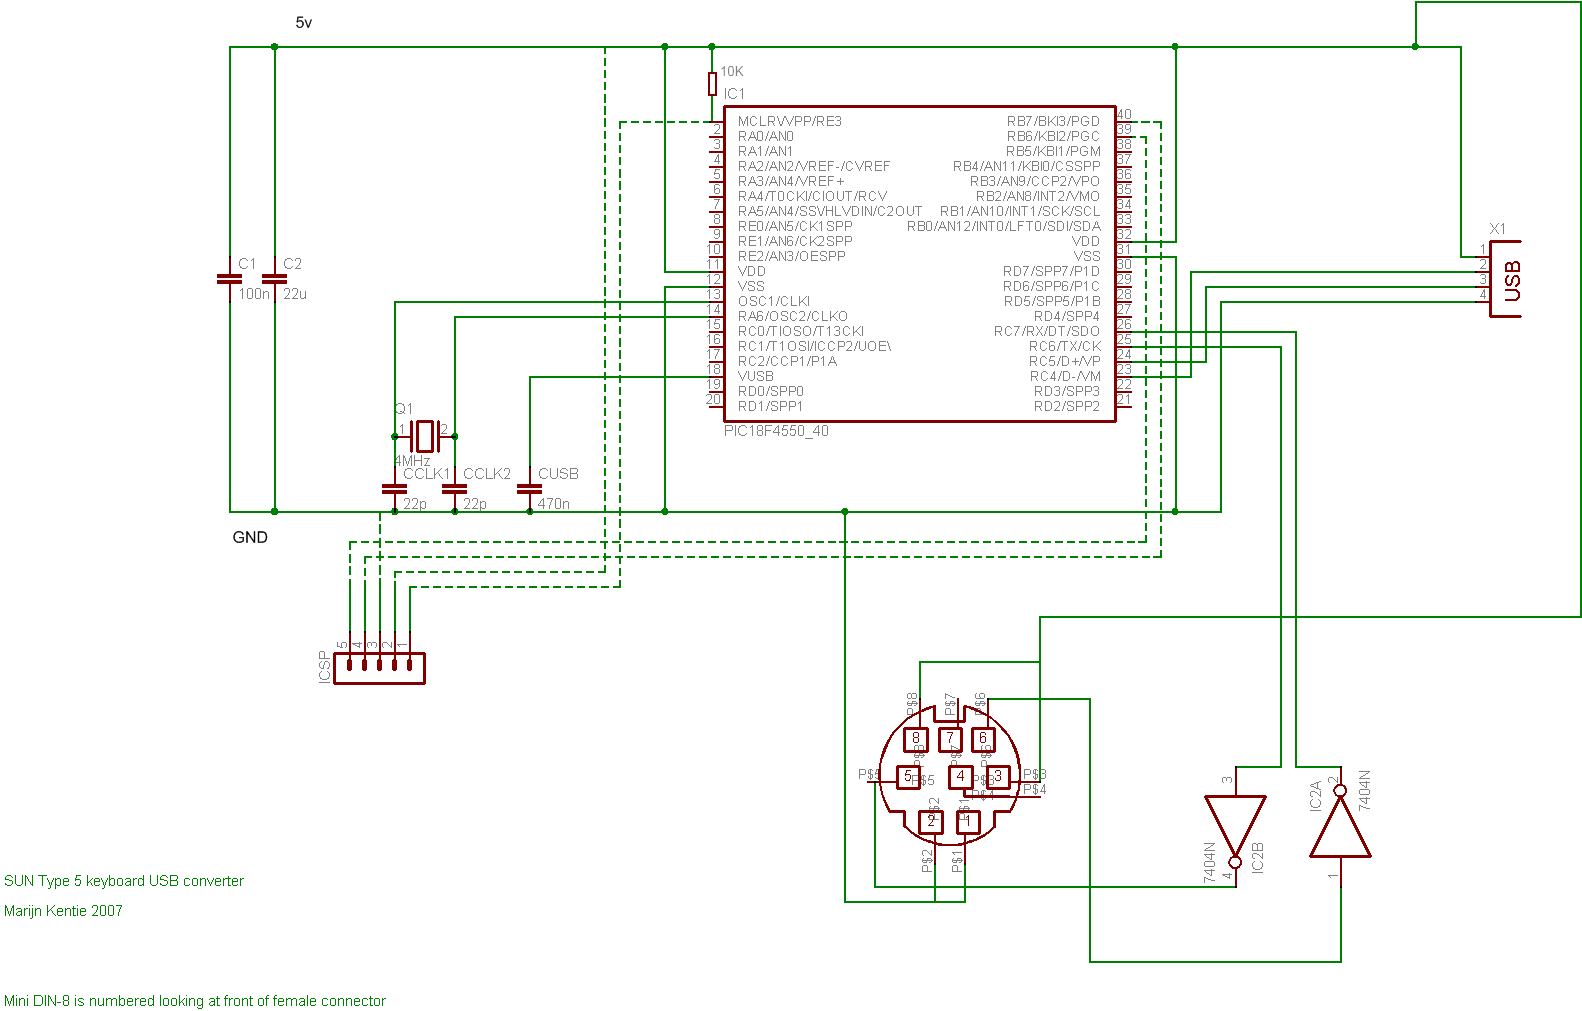 Keyboard Ps 2 Connector Wiring Diagram - Wiring Diagram Data - Usb Keyboard Wiring Diagram